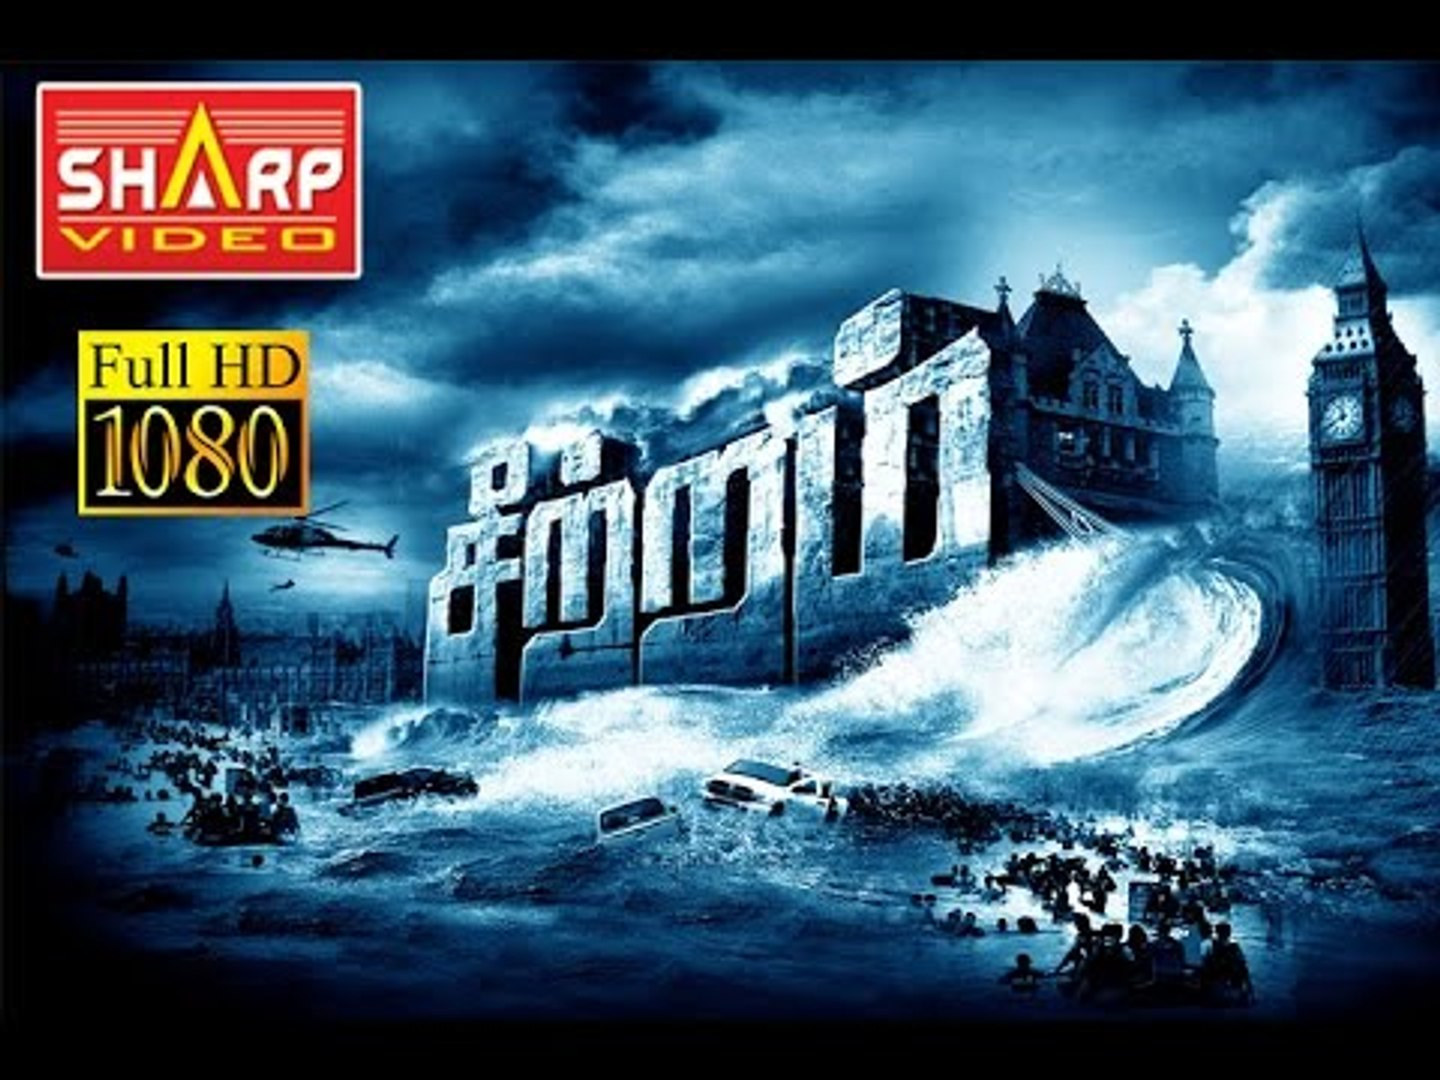 2022 tsunami full movie in tamil free download